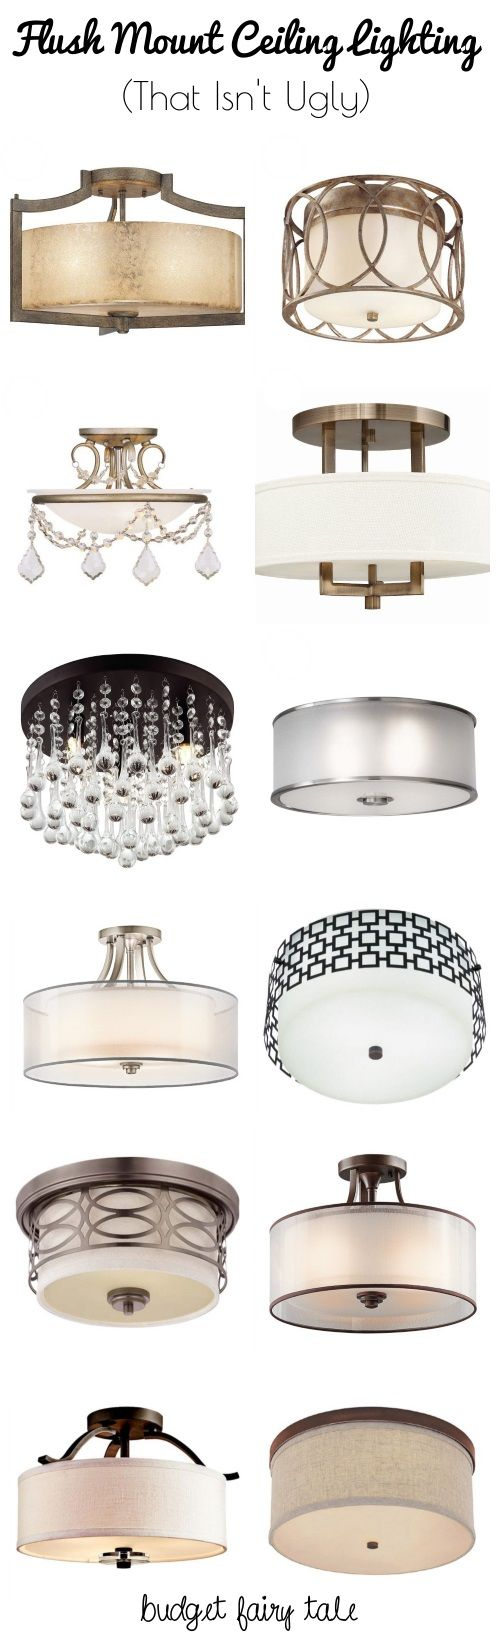 Decorating our Castle: Seeking Flush Mount Lighting Options that Aren't Ugly #lighting